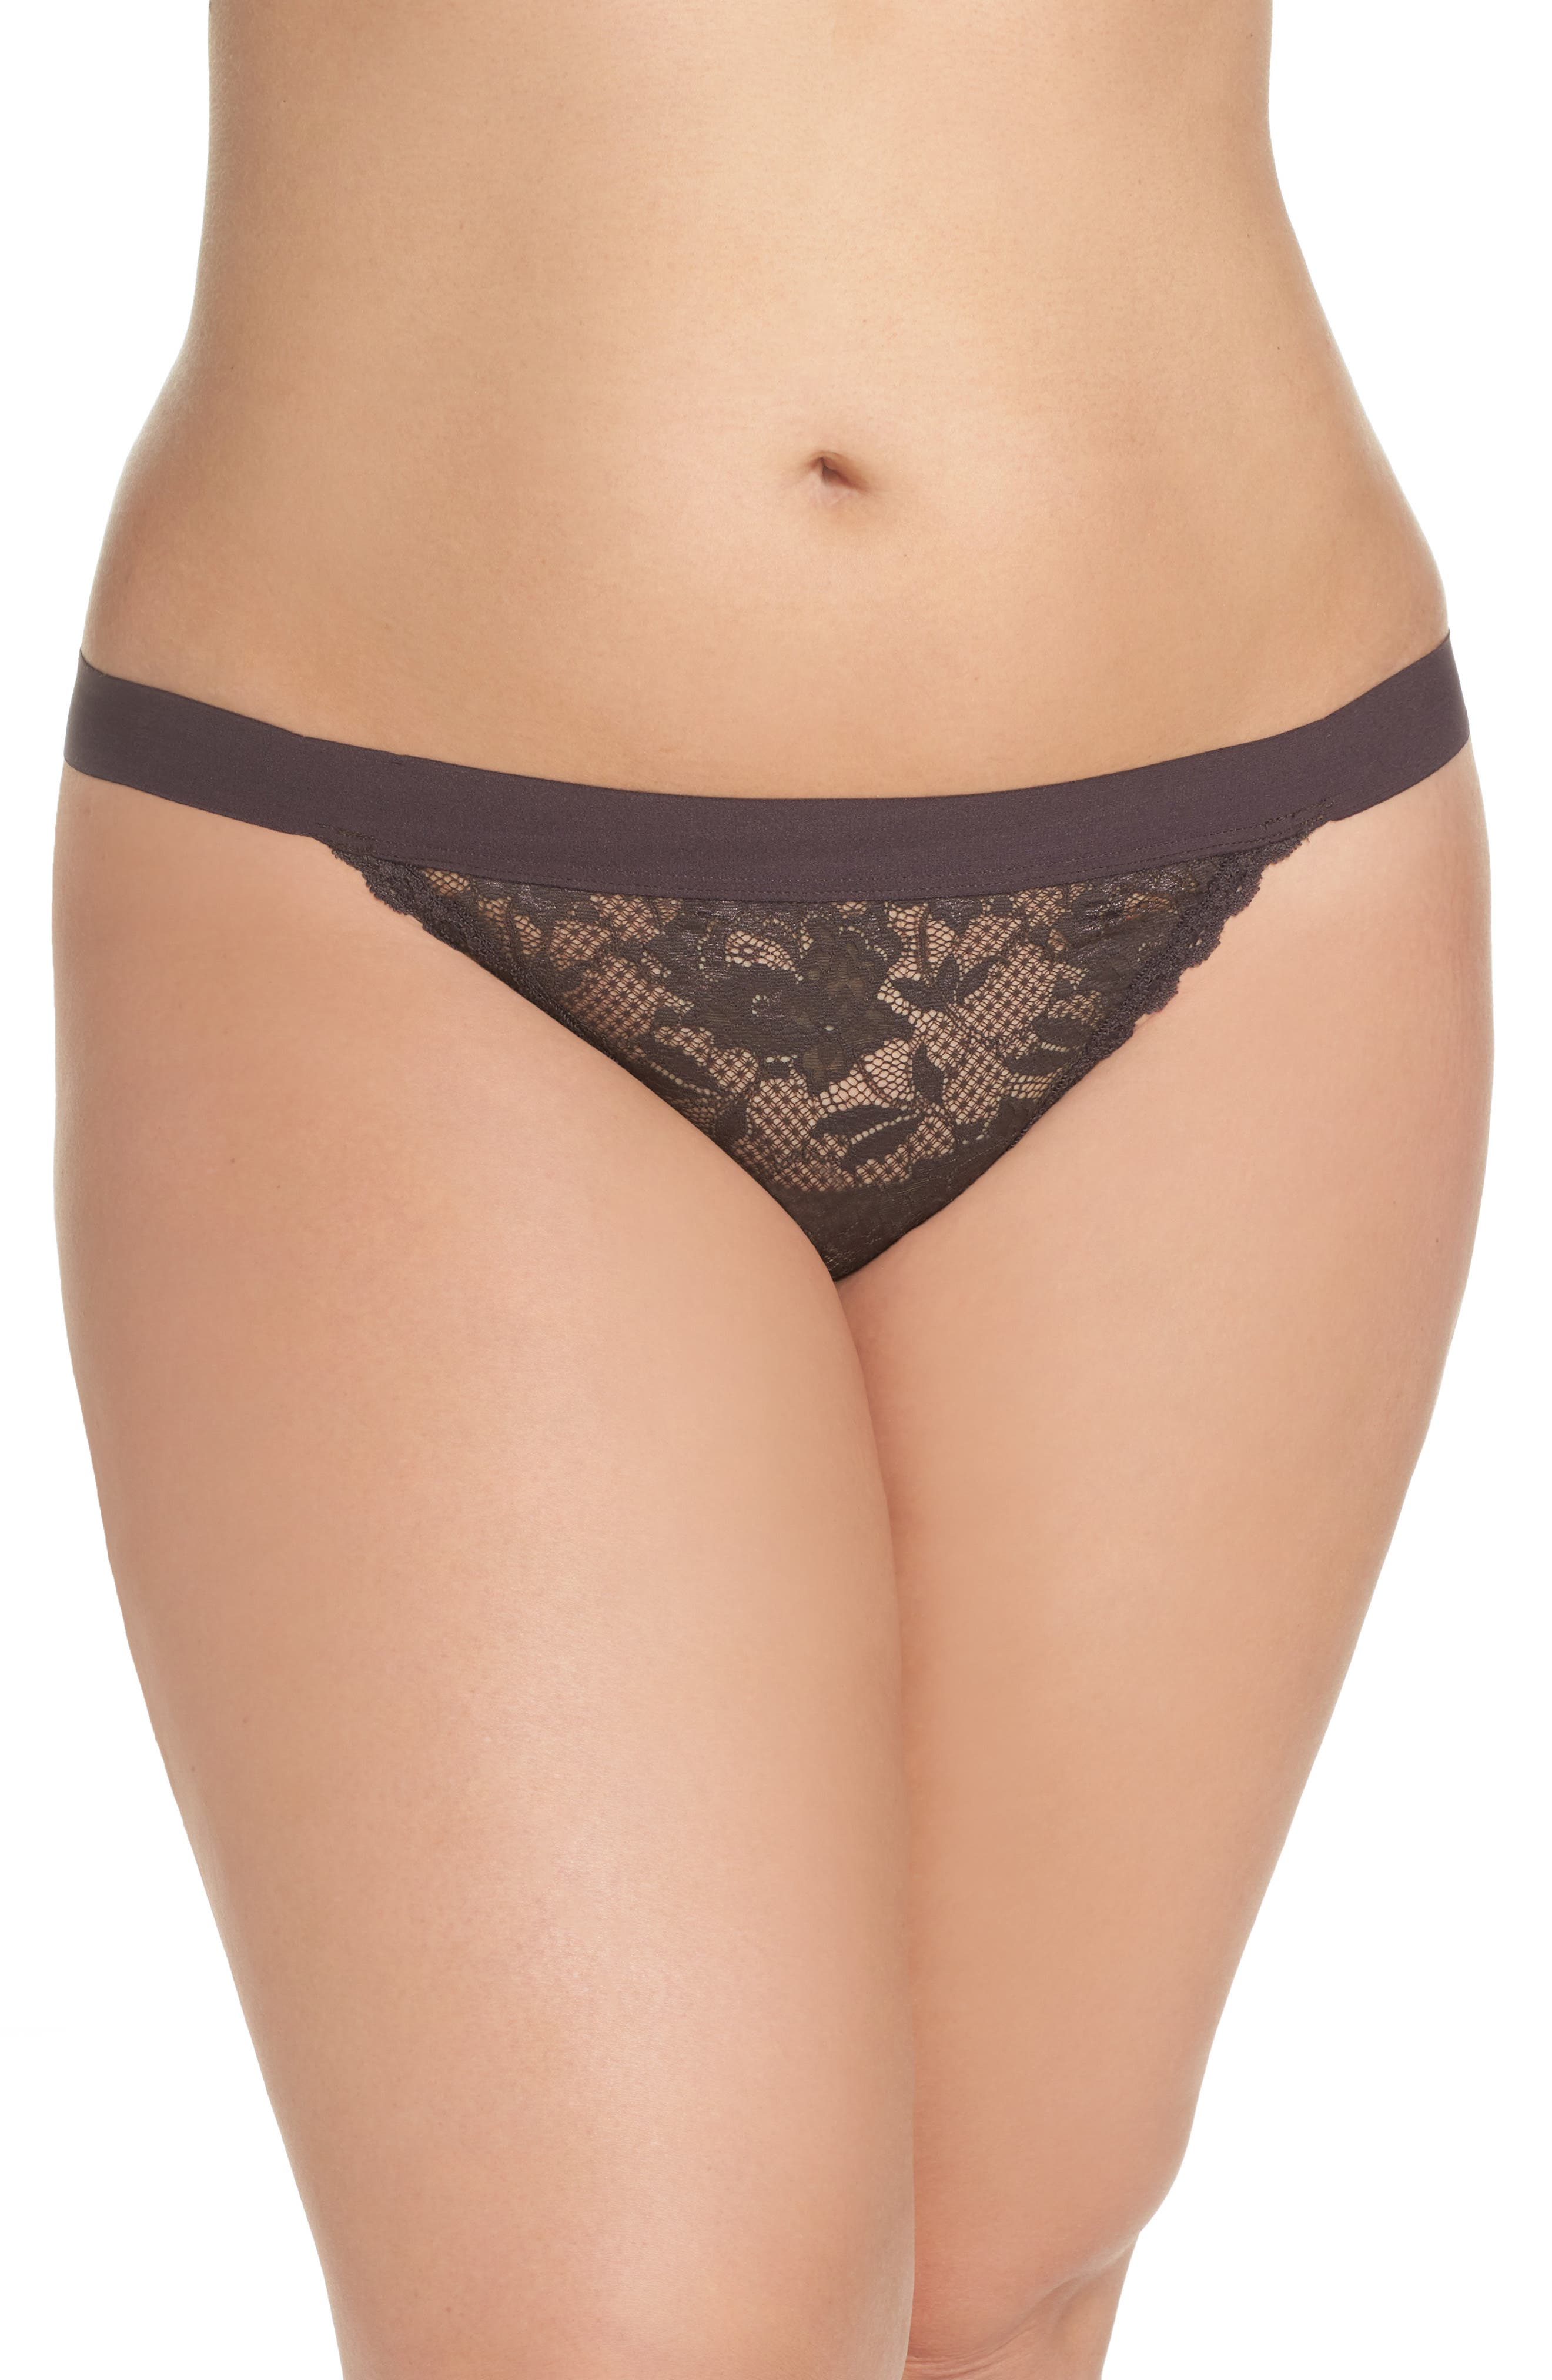 Never Say Never G-String Thong,                         Main,                         color, 024